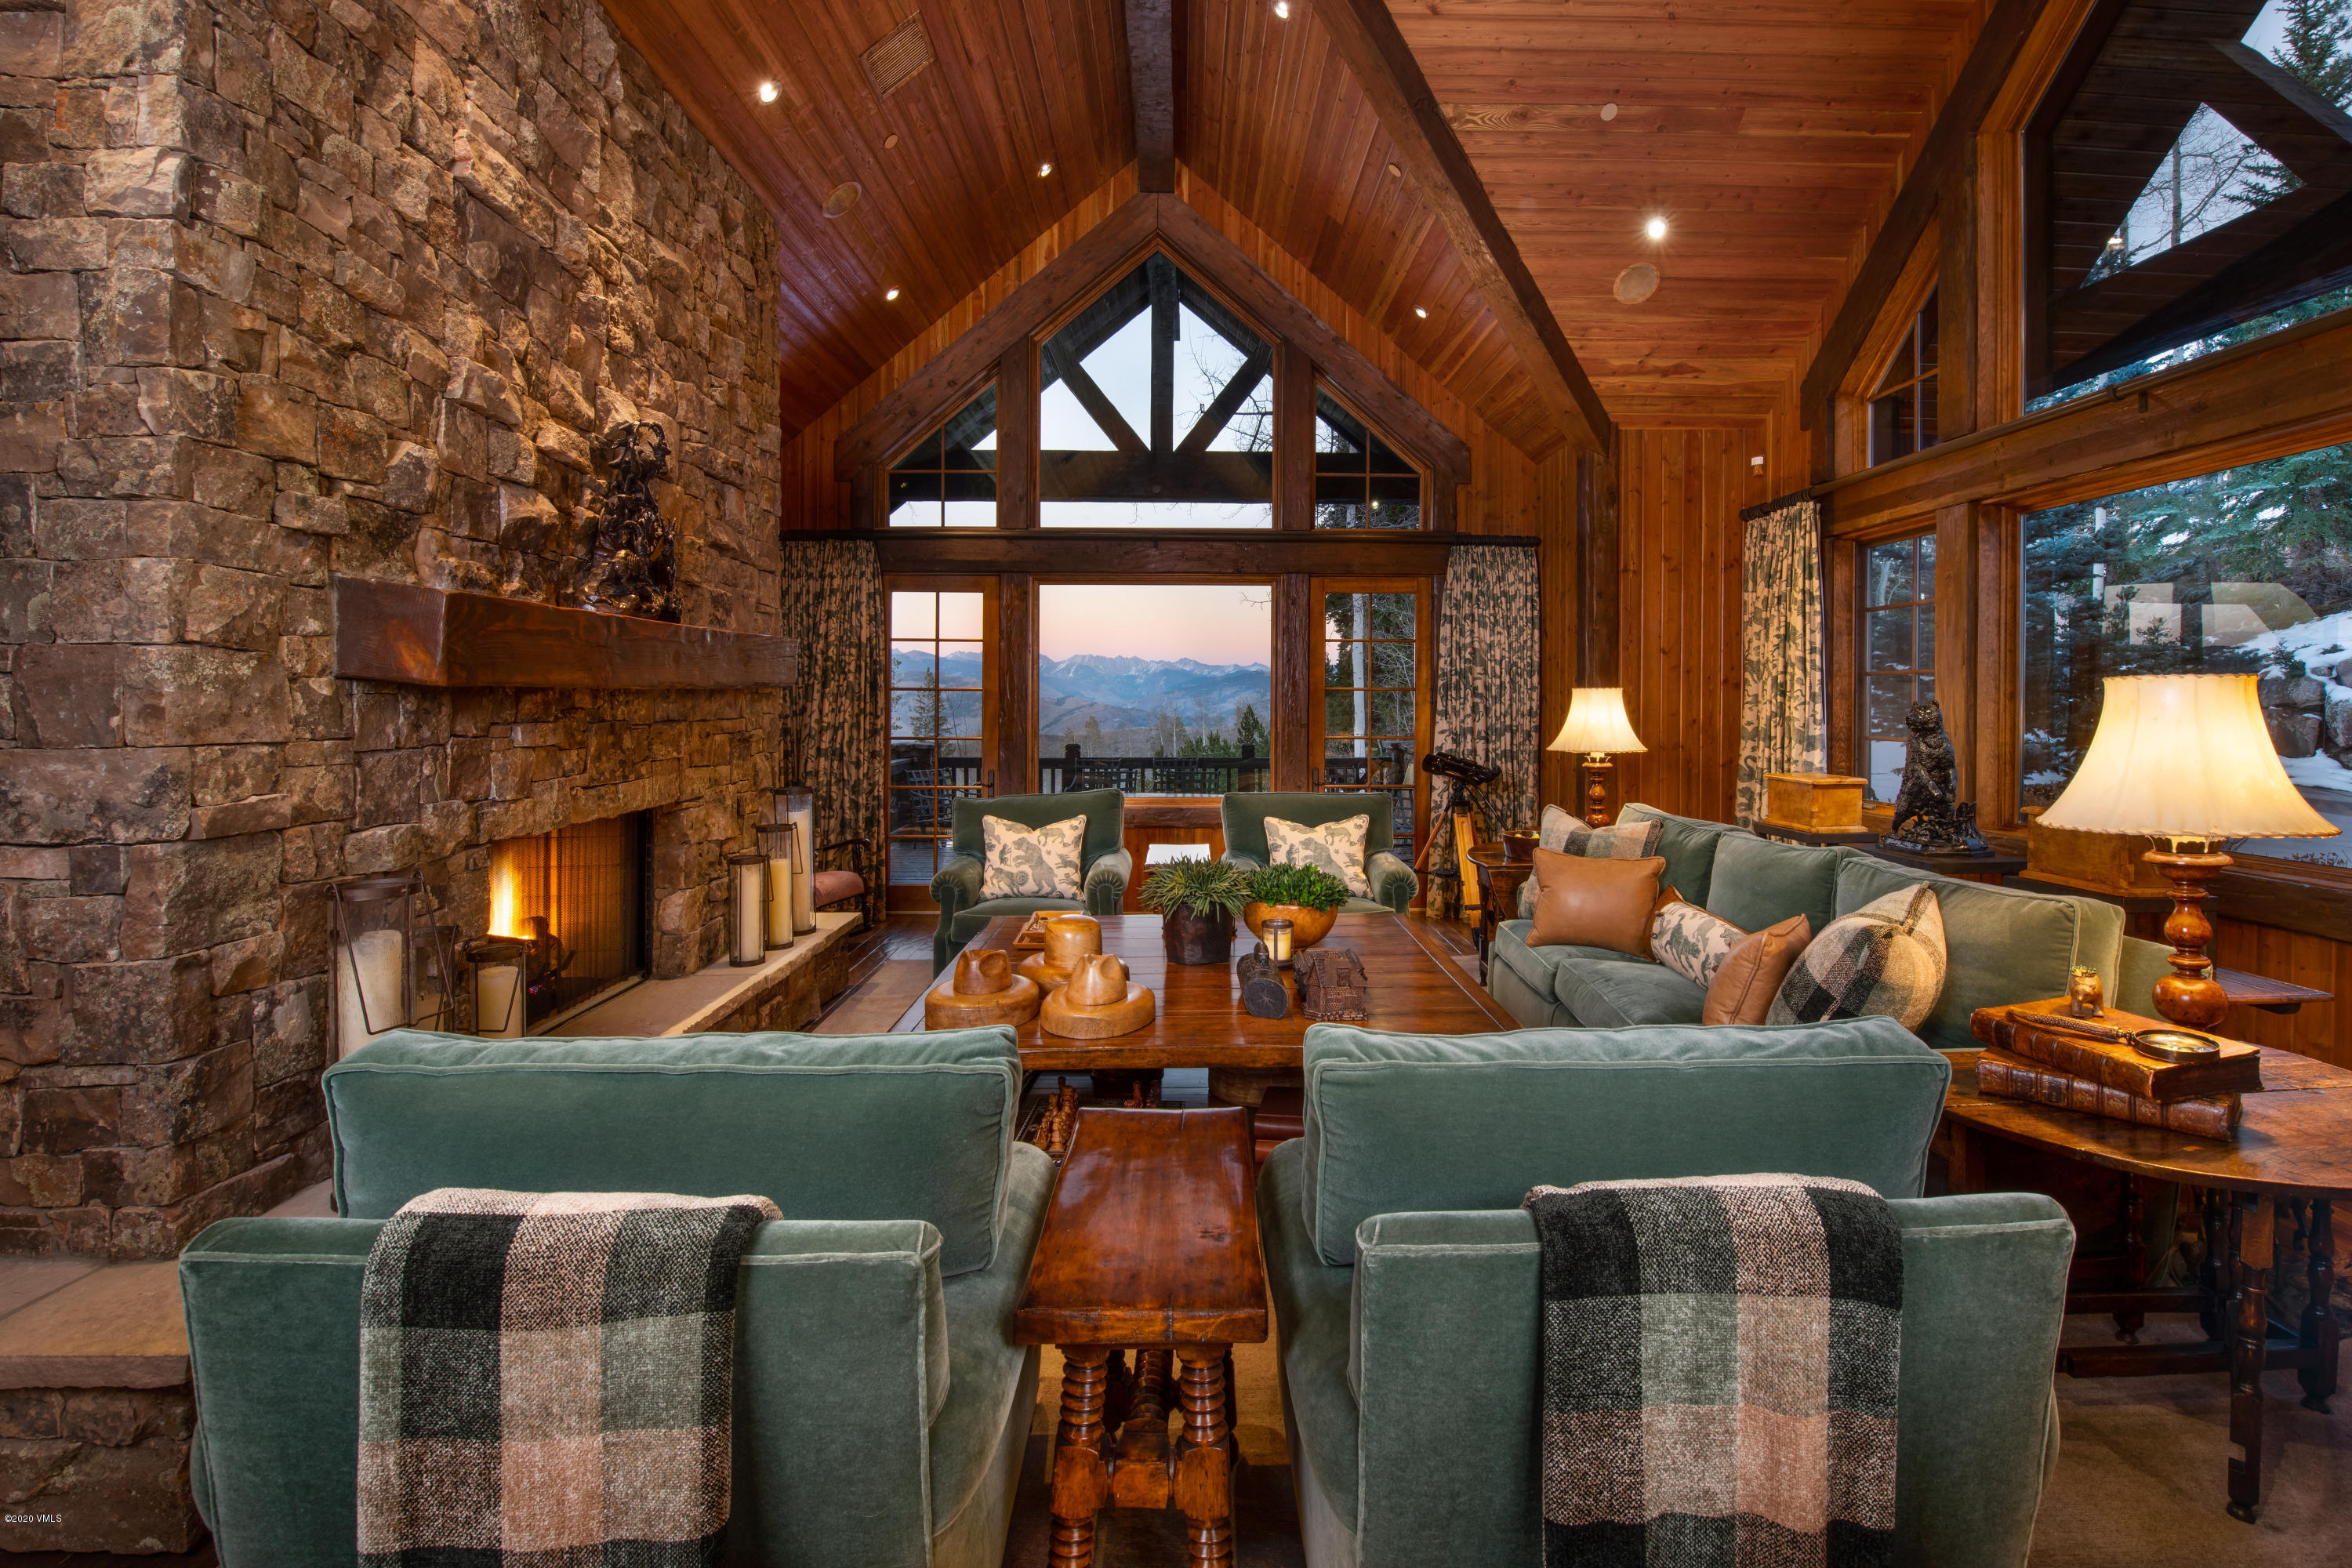 Very first opportunity to own Moose Head Lodge, one of Bachelor Gulch's most exquisite custom-built homes. Great room offers high vaulted ceilings with custom wood throughout, a grand stone fireplace as the focal point of the room with direct and unobstructed, expansive and picturesque views of the Gore Range to the east. Well-appointed kitchen complete with its own wood-burning pizza oven wonderful for family get-togethers. Home is built on a large homesite with mature trees that provide for privacy in a secluded on-mountain setting. Perfect ski-in/ski-out access via Solitaire Ski-way right to the back door and heated back patio. Located directly off the patio is an over-sized ski room with cubbies for all residents and an adjoining hearth room ideal for your very own private apres-ski hour. Attractive and comfortable main-level primary suite with his and hers closets and expansive bathroom with steam shower, jetted bathtub, and direct access to the outdoors and hot tub area. Private and pretty over-sized upper-level junior suite and secondary bedroom, both with en-suite bathrooms. Lower level features 3 additional bedrooms; theater room with brand new 4k projector and surround sound; wine room and ample storage. Many recent upgrades enhance the property such as a new: DaVinci roof, hot tub, water heater, Control4 central control lighting system and water shutoff sensor system. Ample surface parking provided with a 3-car garage and additional overflow spaces in the heated driveway. Sold designer furnished.